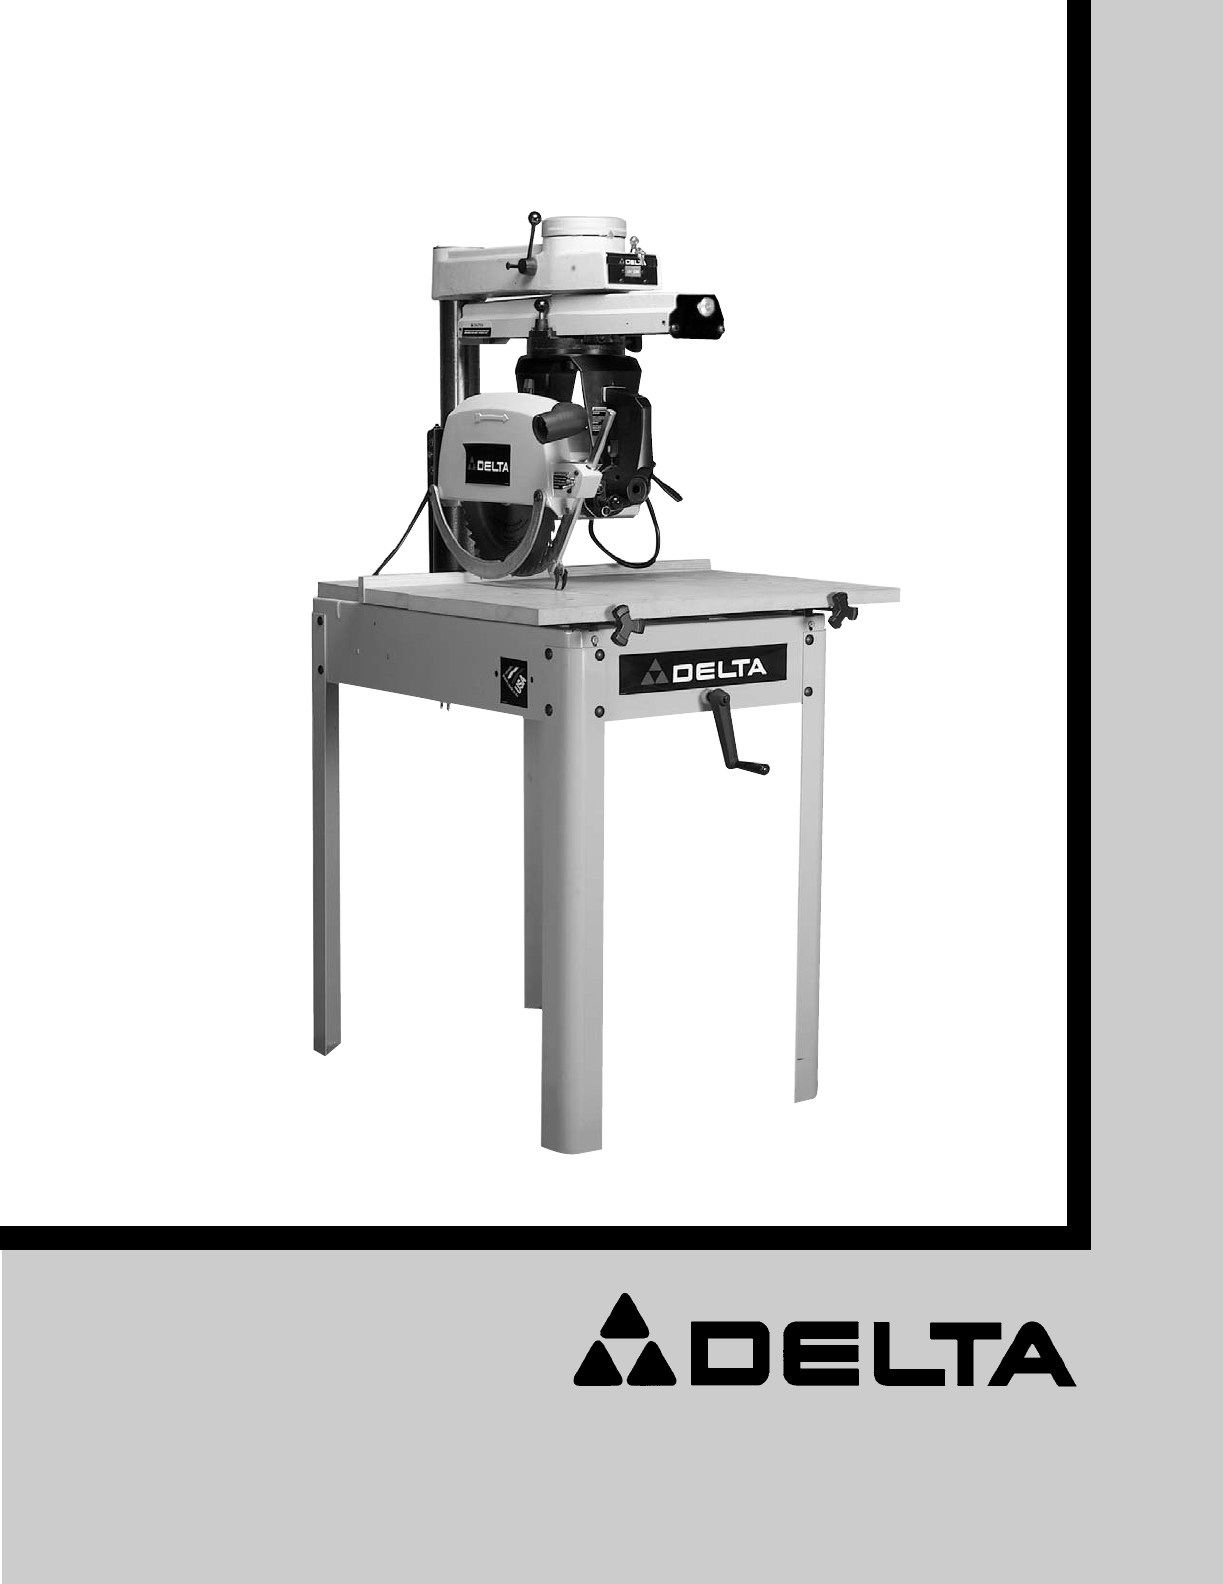 49ba47c8 16a8 4427 9696 cdc70cf94b9c bg1 delta saw 33 890 user guide manualsonline com  at panicattacktreatment.co